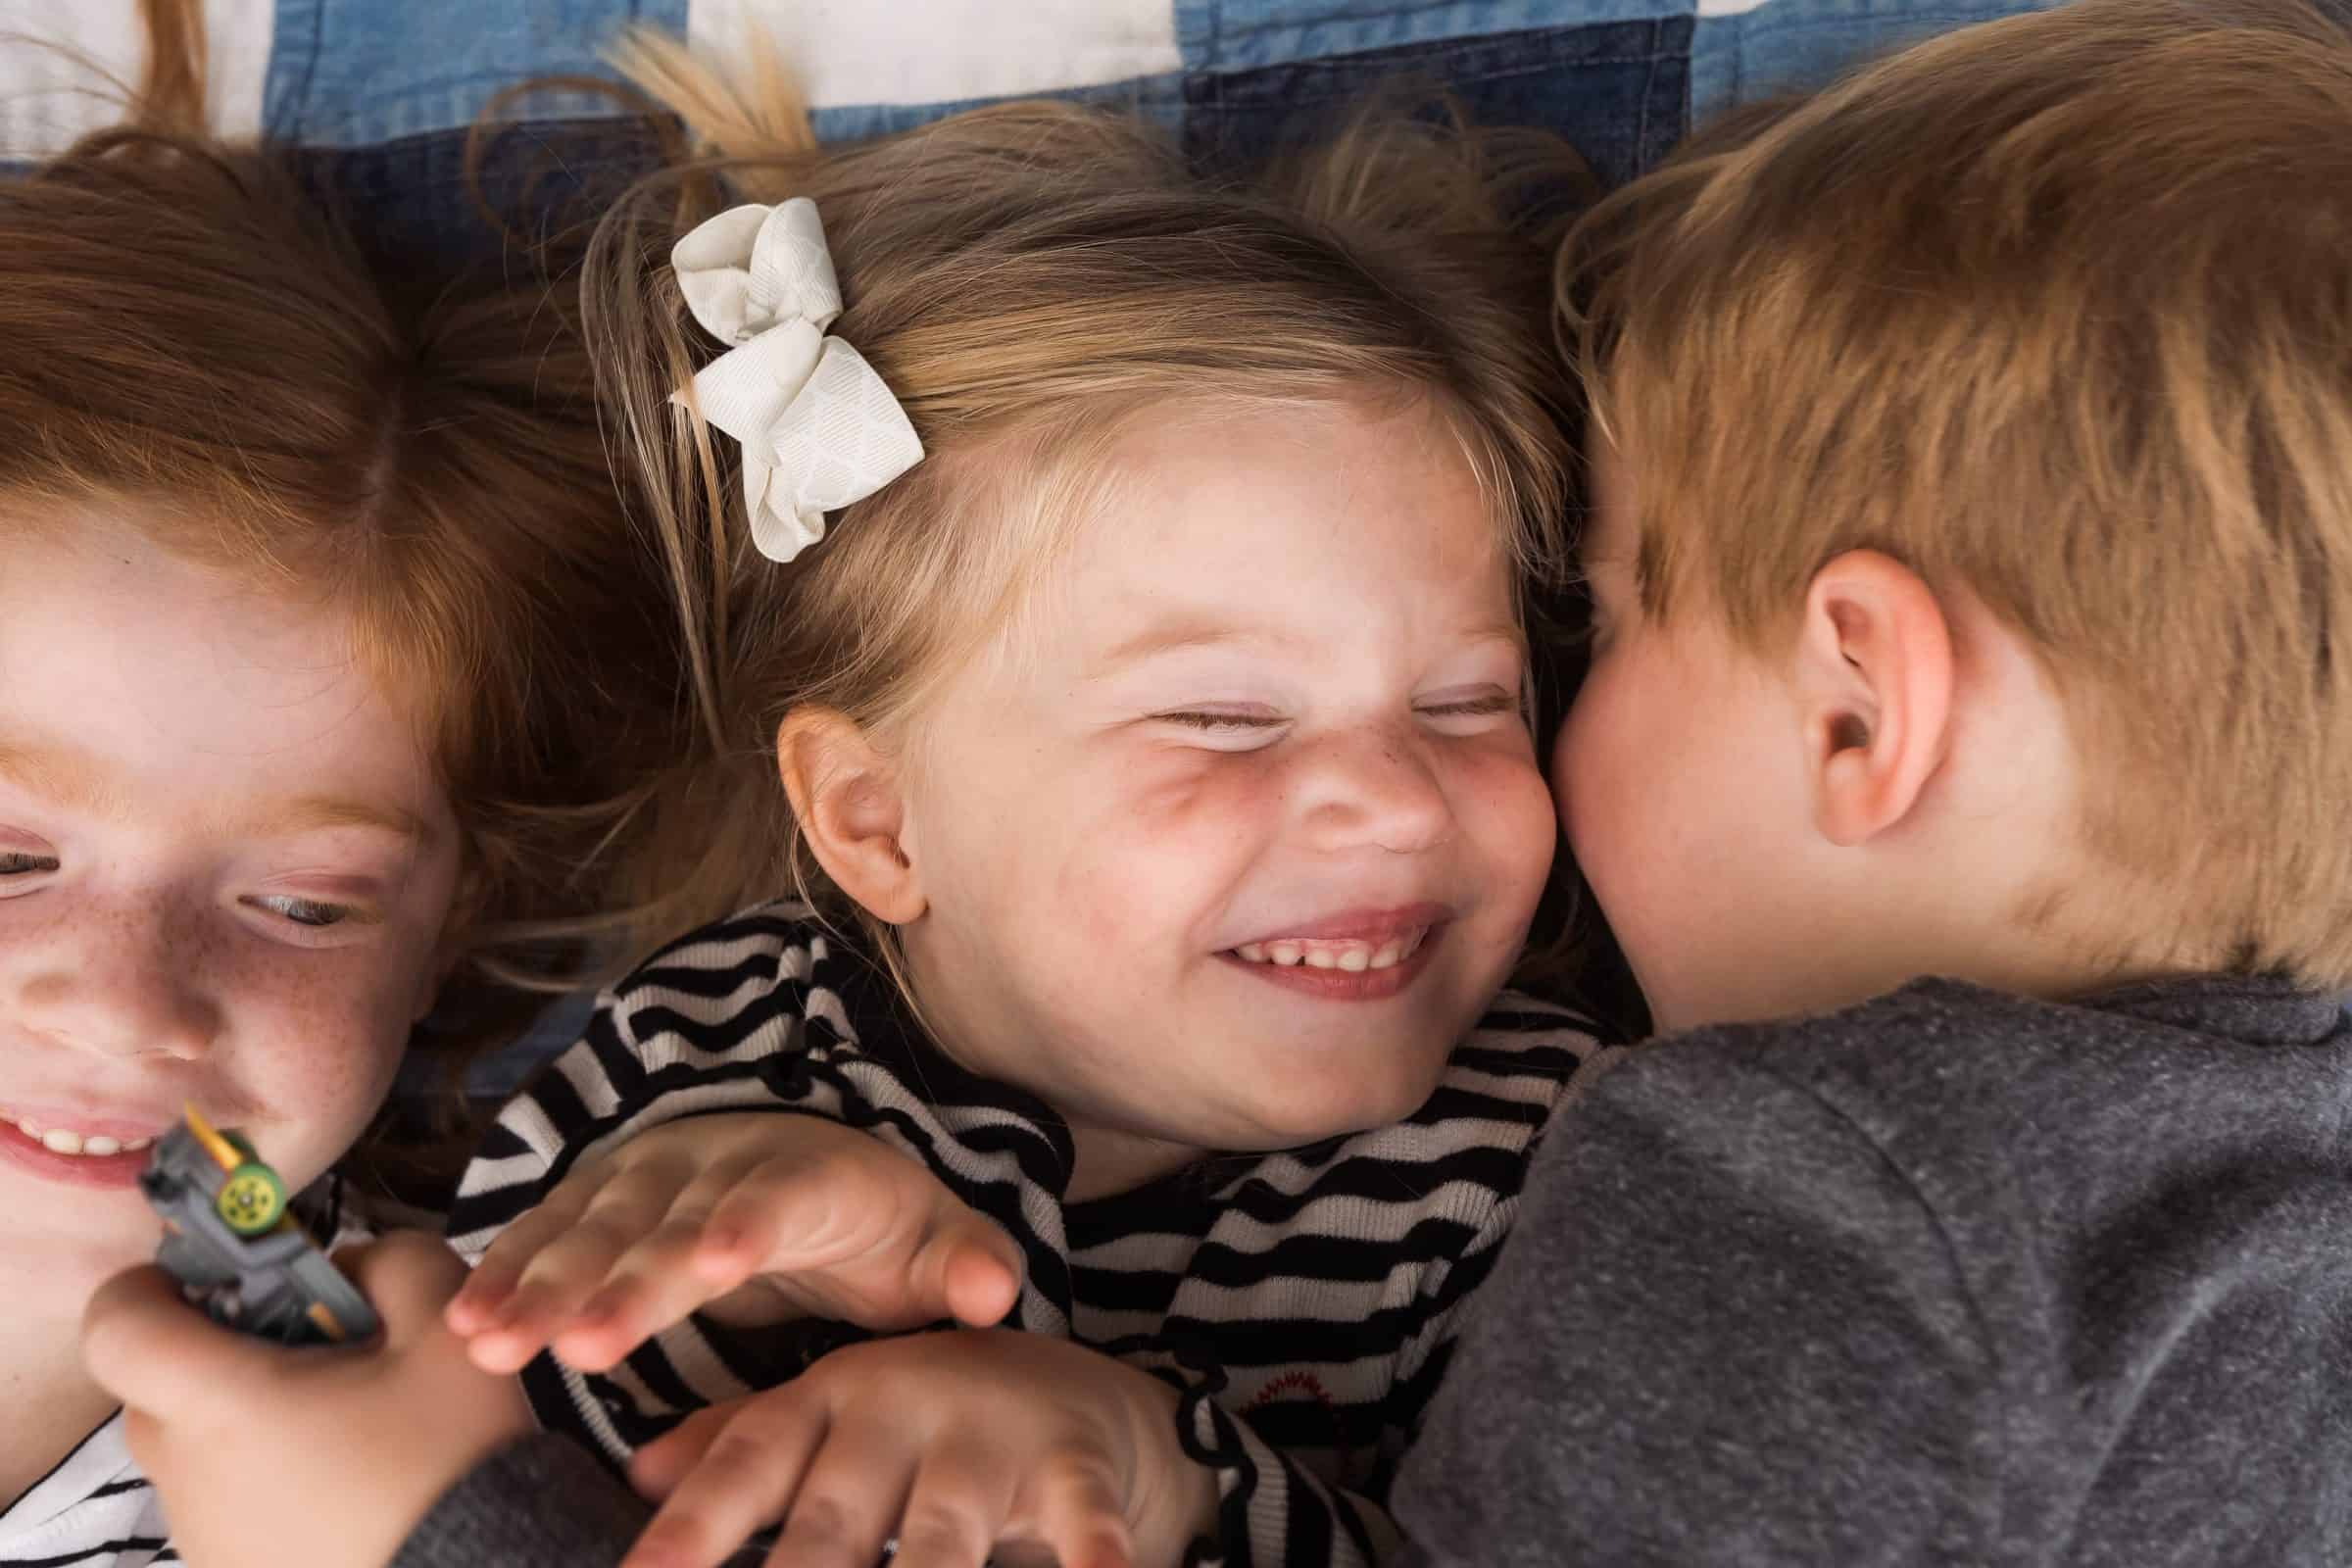 kids laying on blanket and laughing together